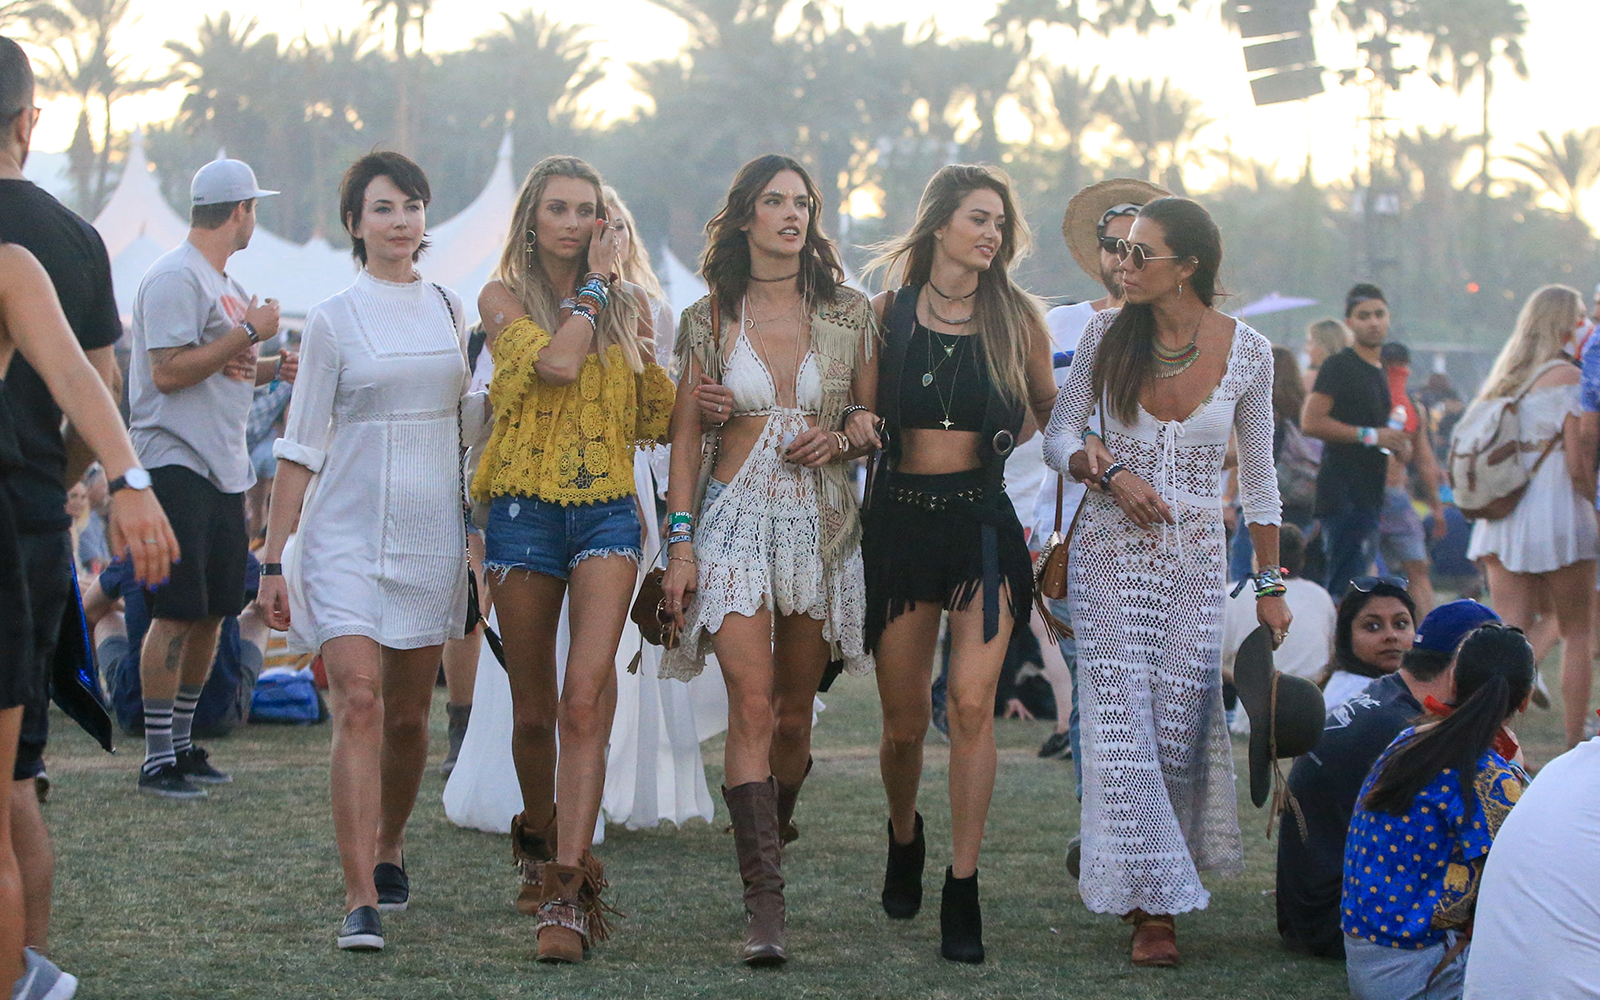 In Photos: How Celebs Rock Out at Coachella